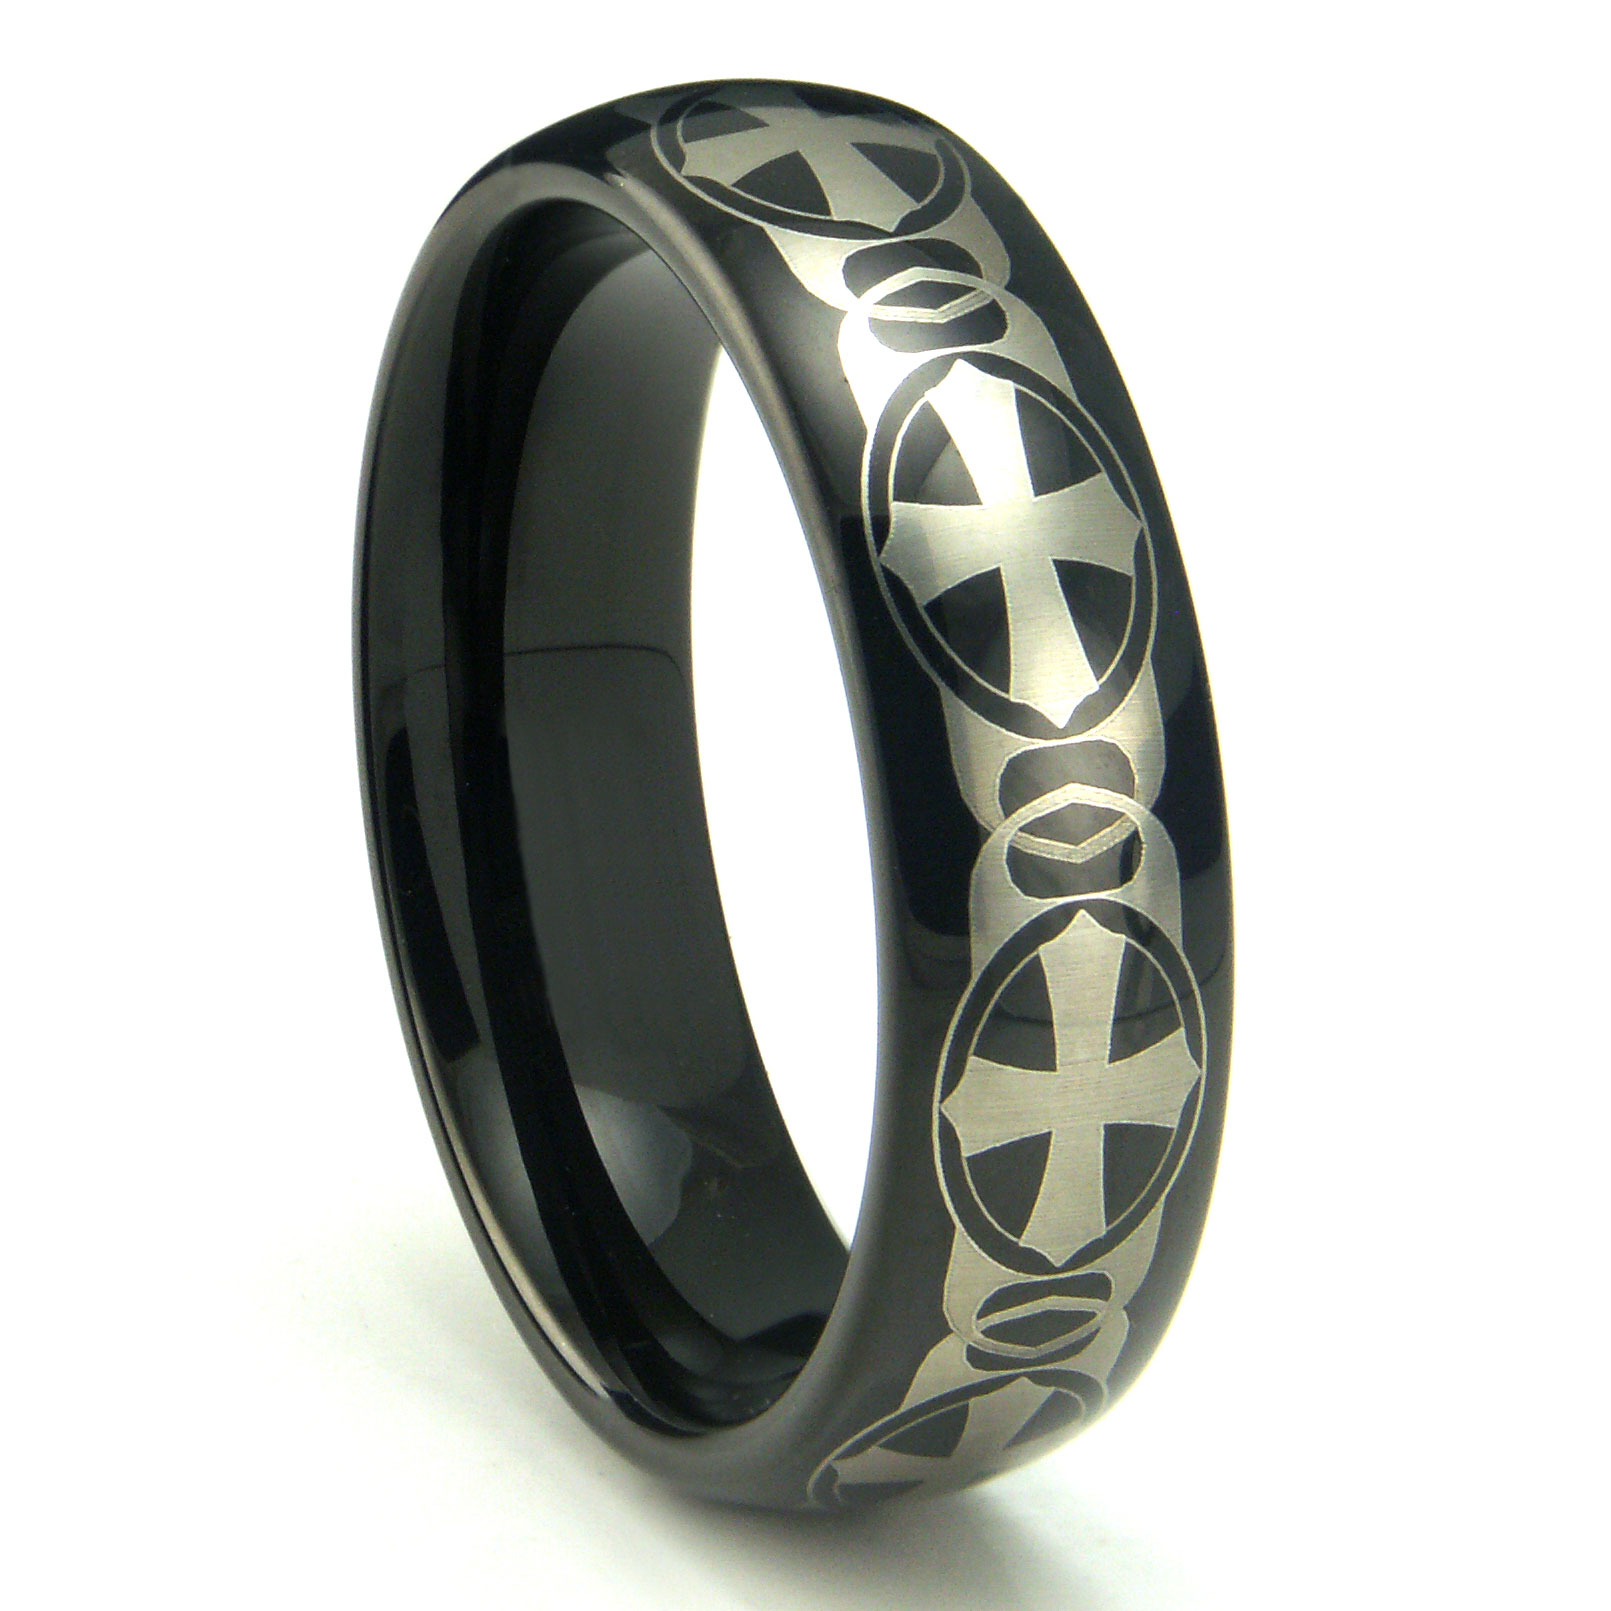 be inspired personalized rings bands beers engraved jewellery de wedding engraving